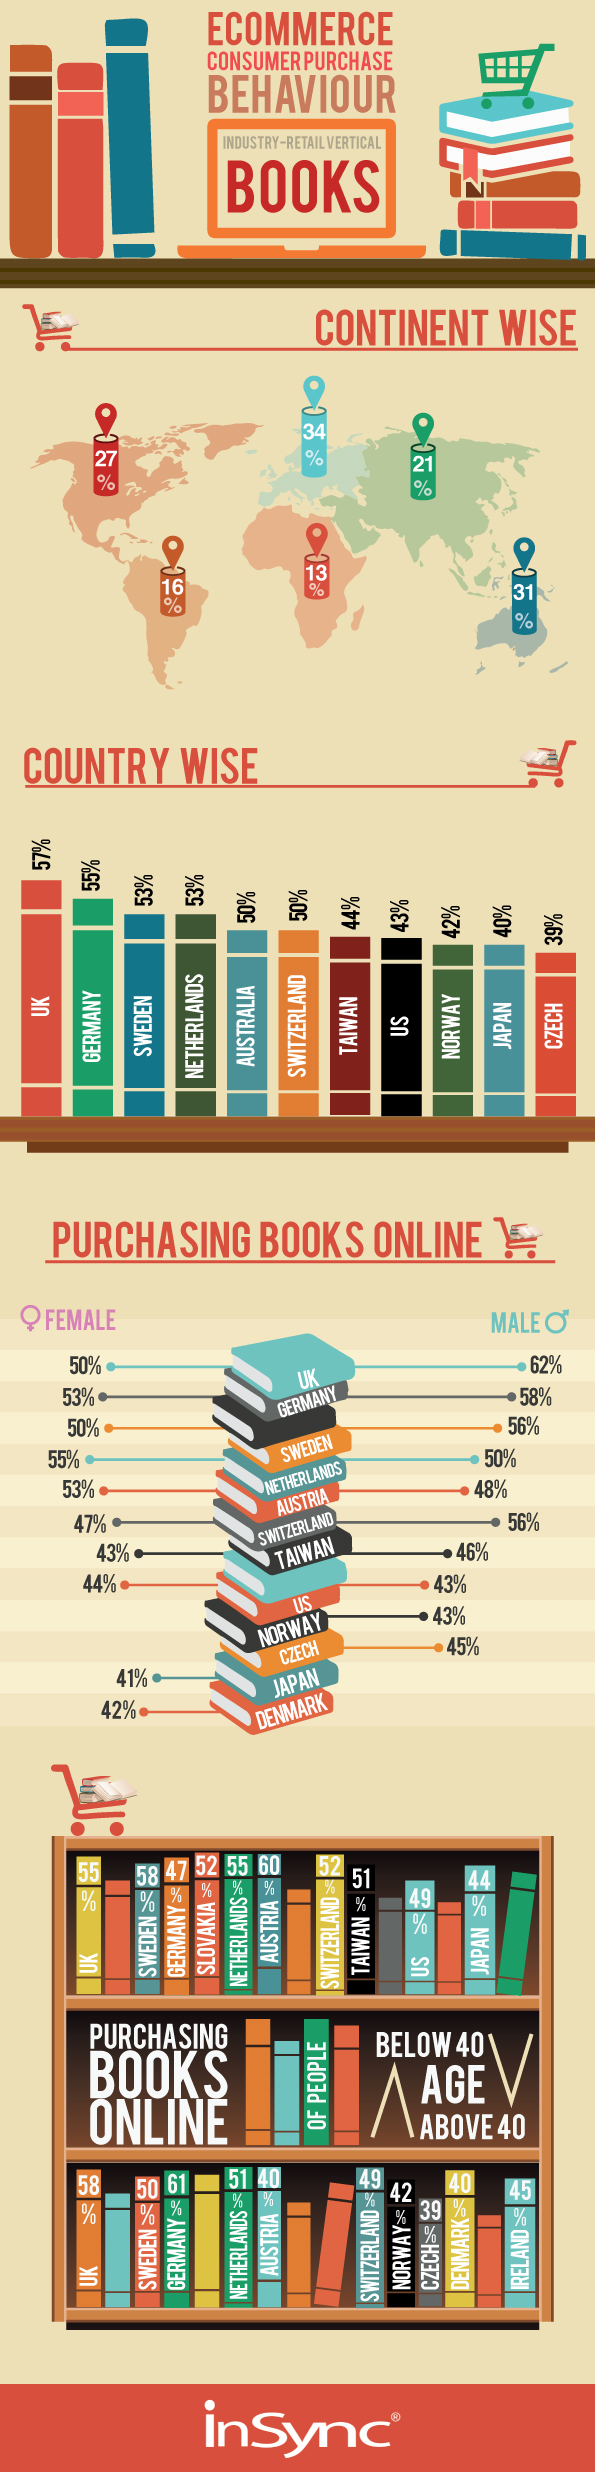 Consumer Purchase Behavior- Books